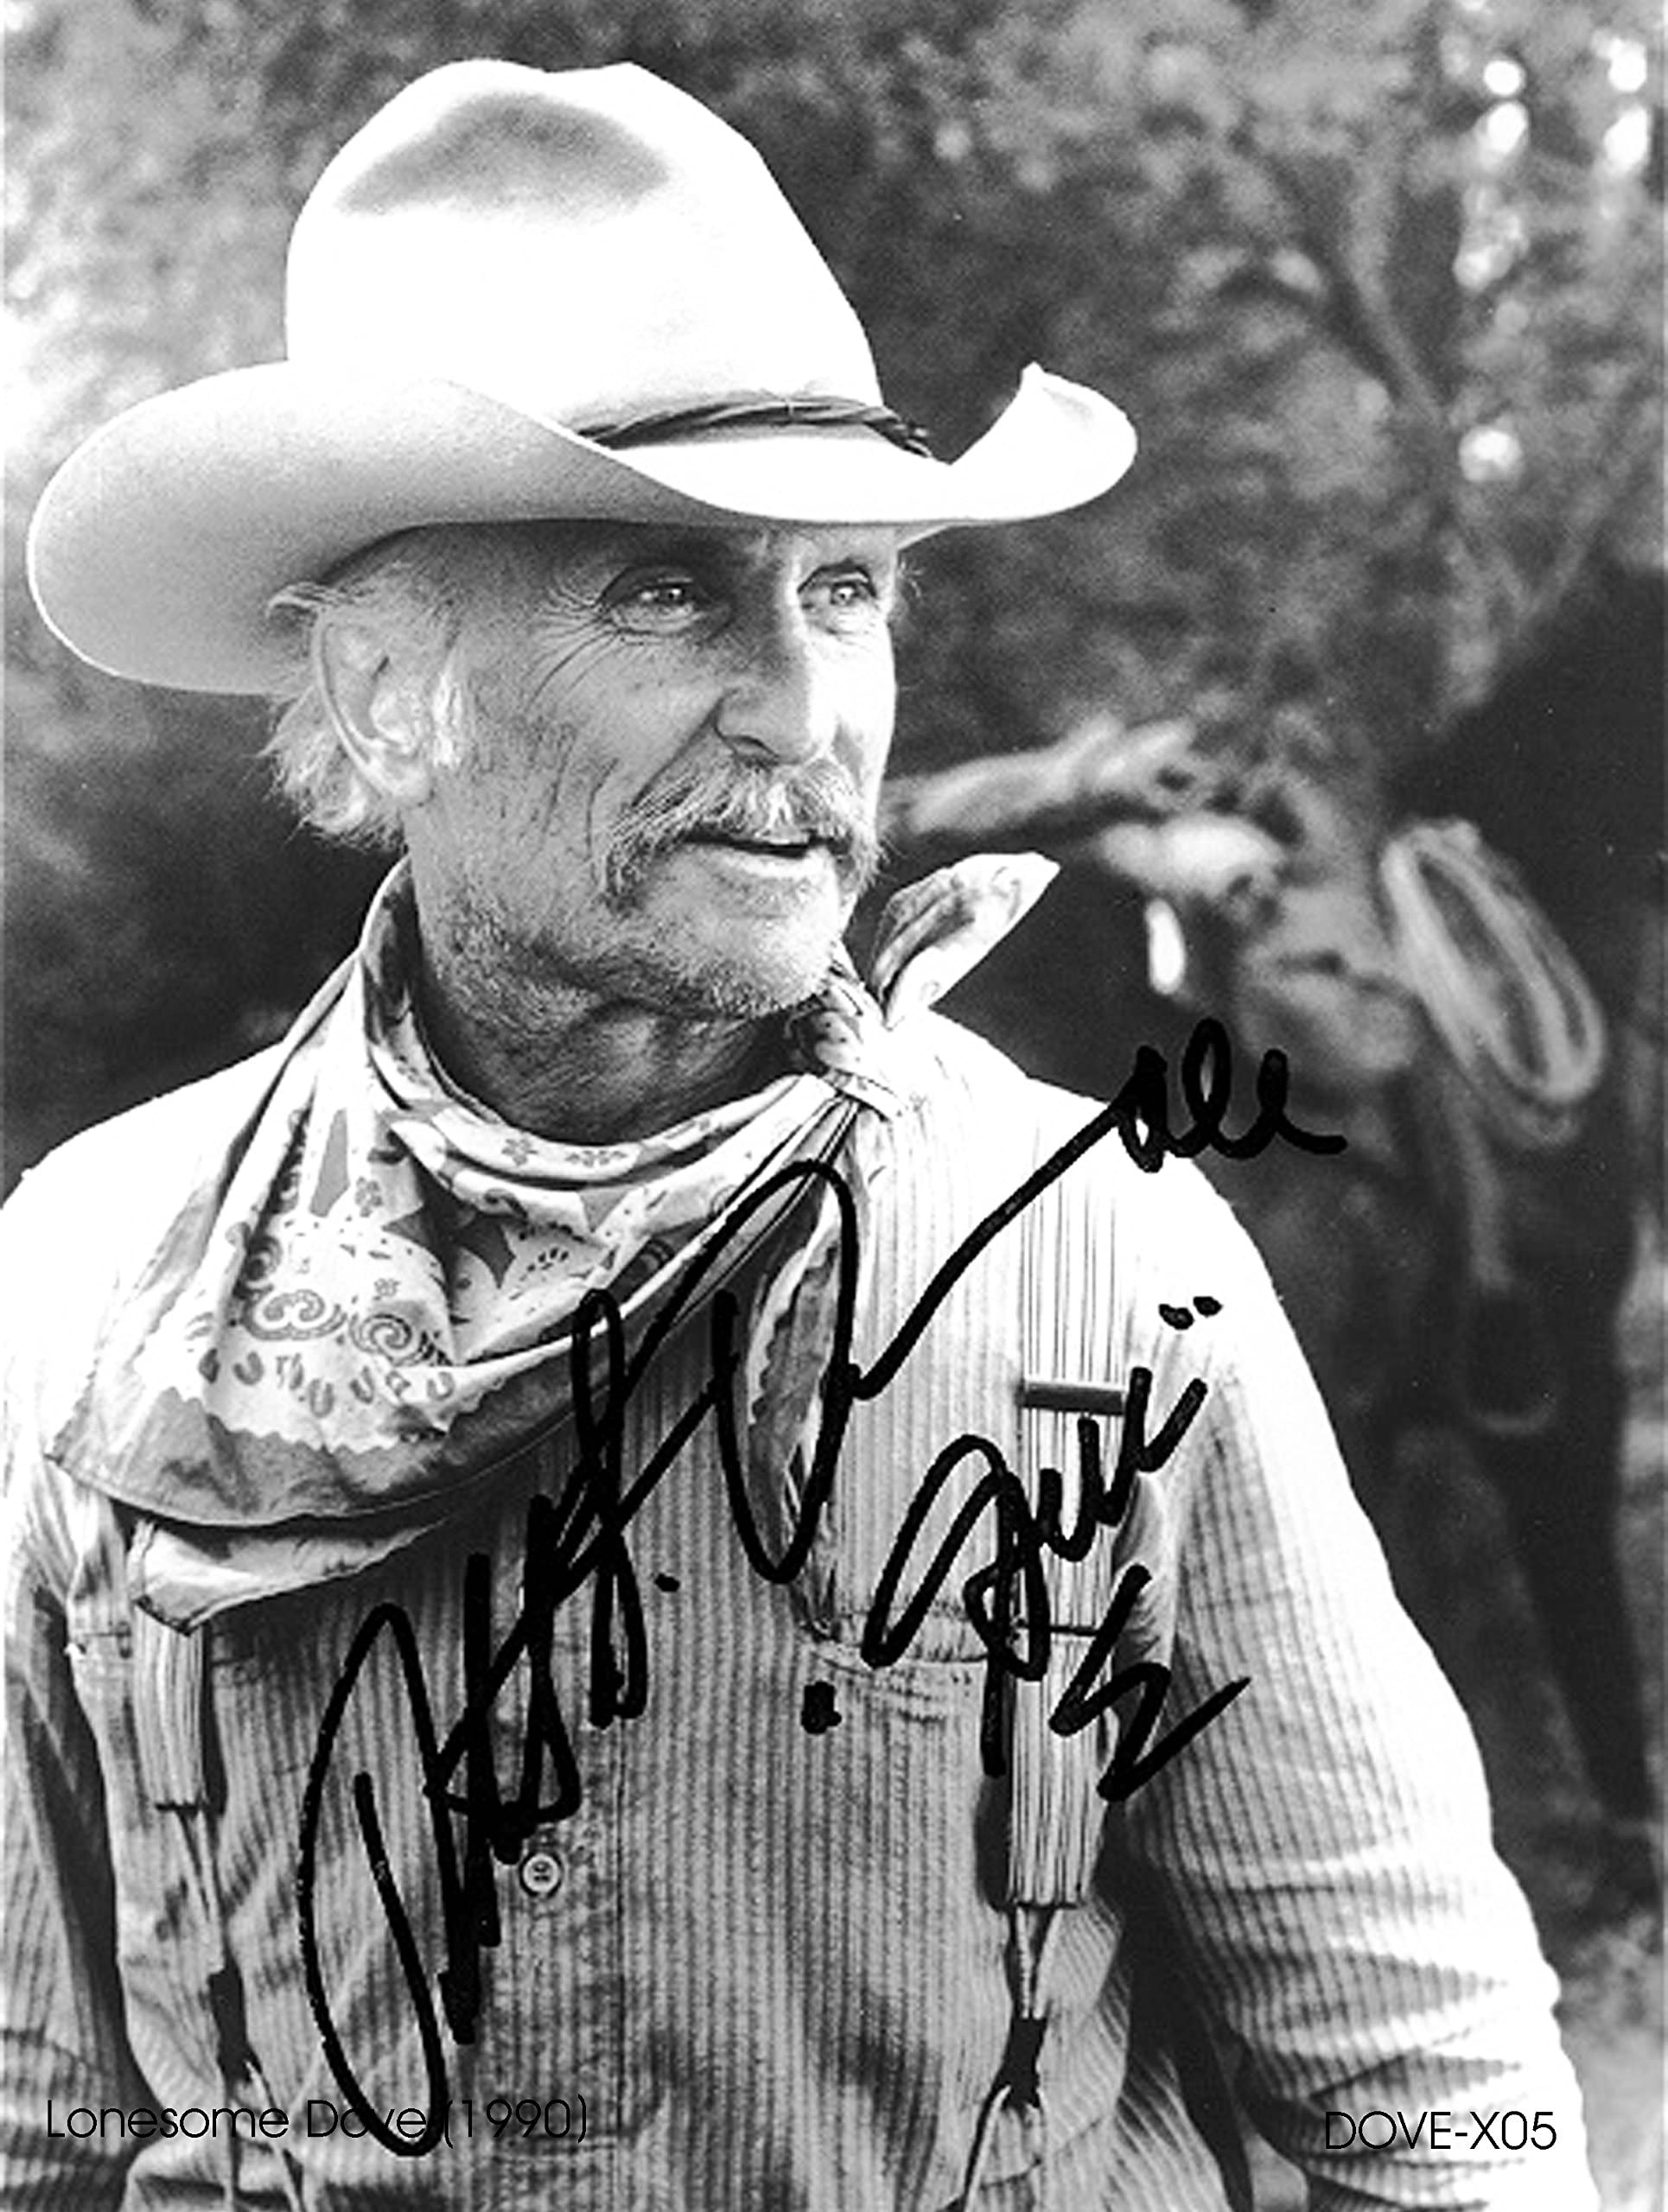 LONESOME DOVE  Robert Duval /& Ricky Schroder Autographed Copy 8x10 Reprint